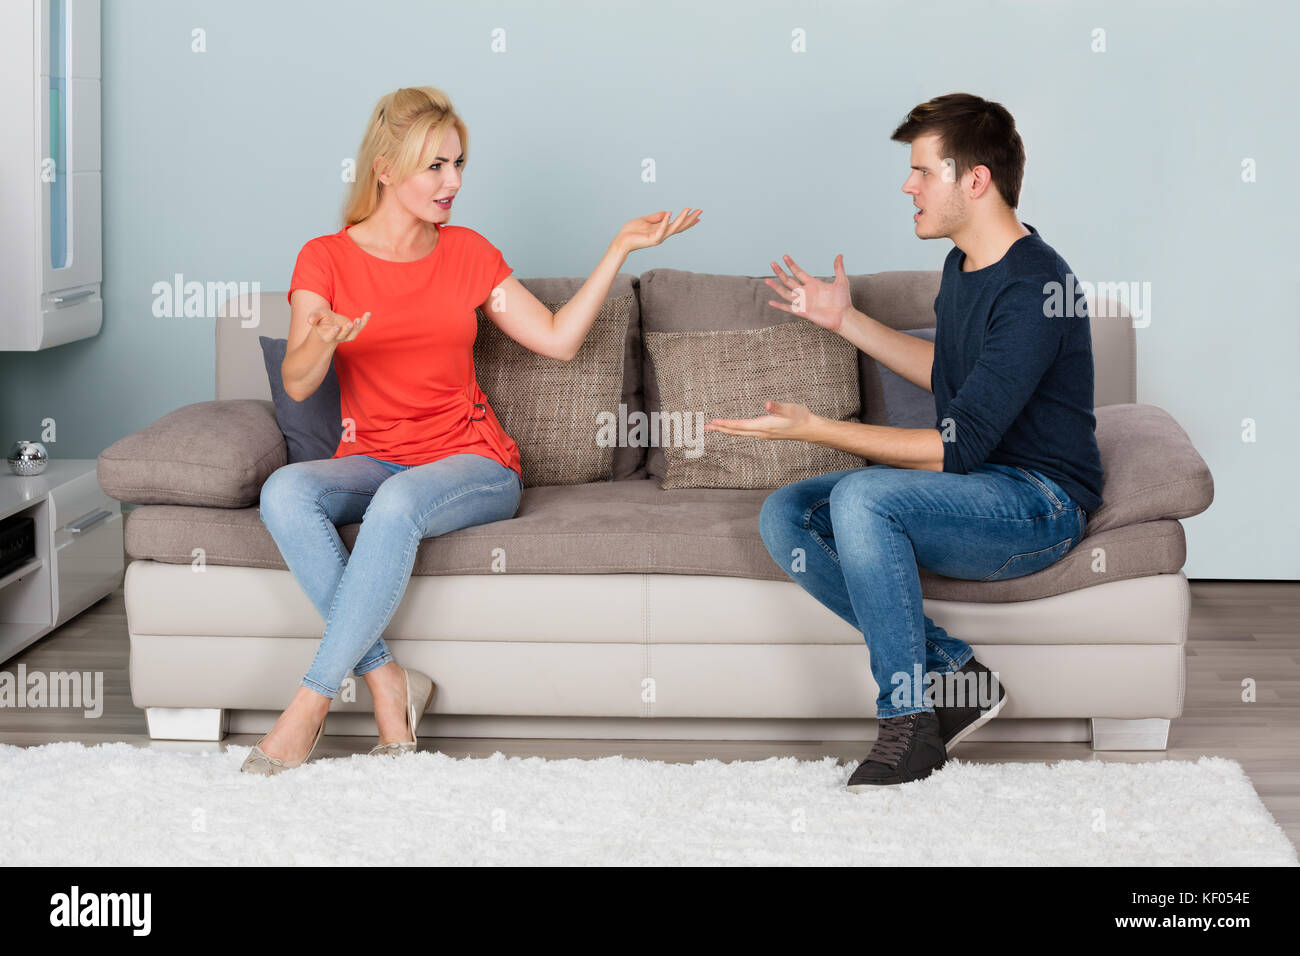 Sad Stressed Couple On Couch Quarreling About Infidelity With Each Other At Home - Stock Image